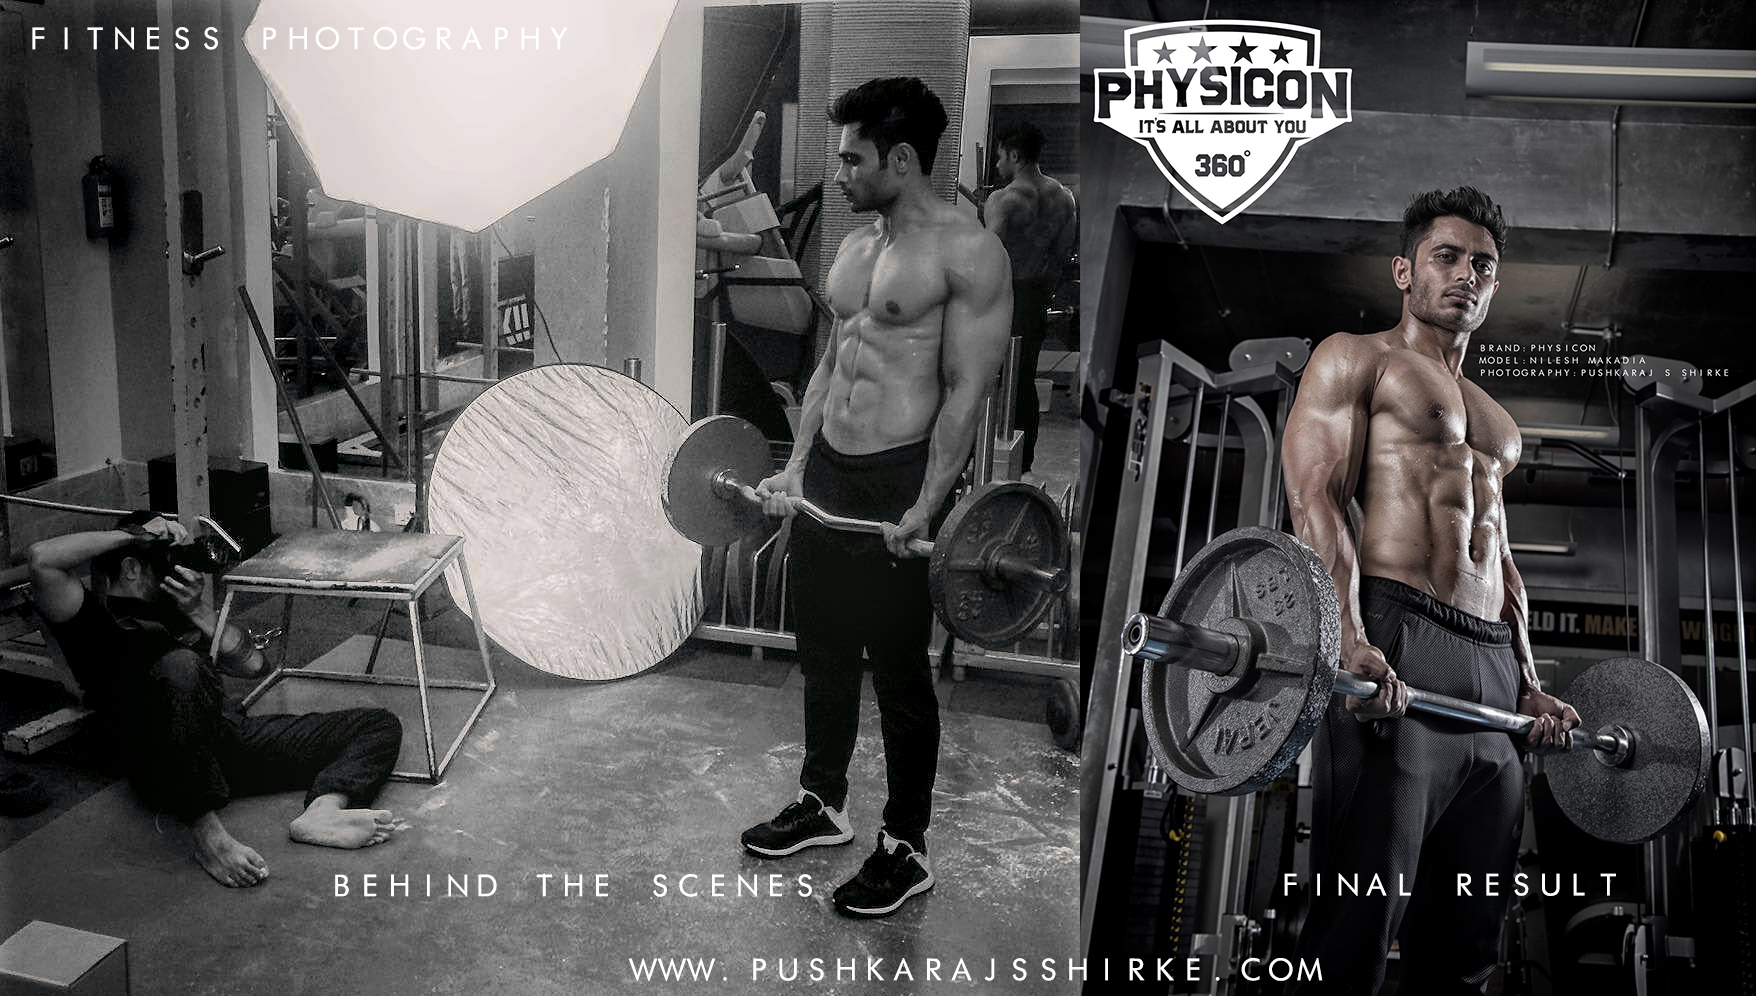 fitness-photography-lighting-behind-the-scenes-pushkaraj-s-shirke-lighting-gym